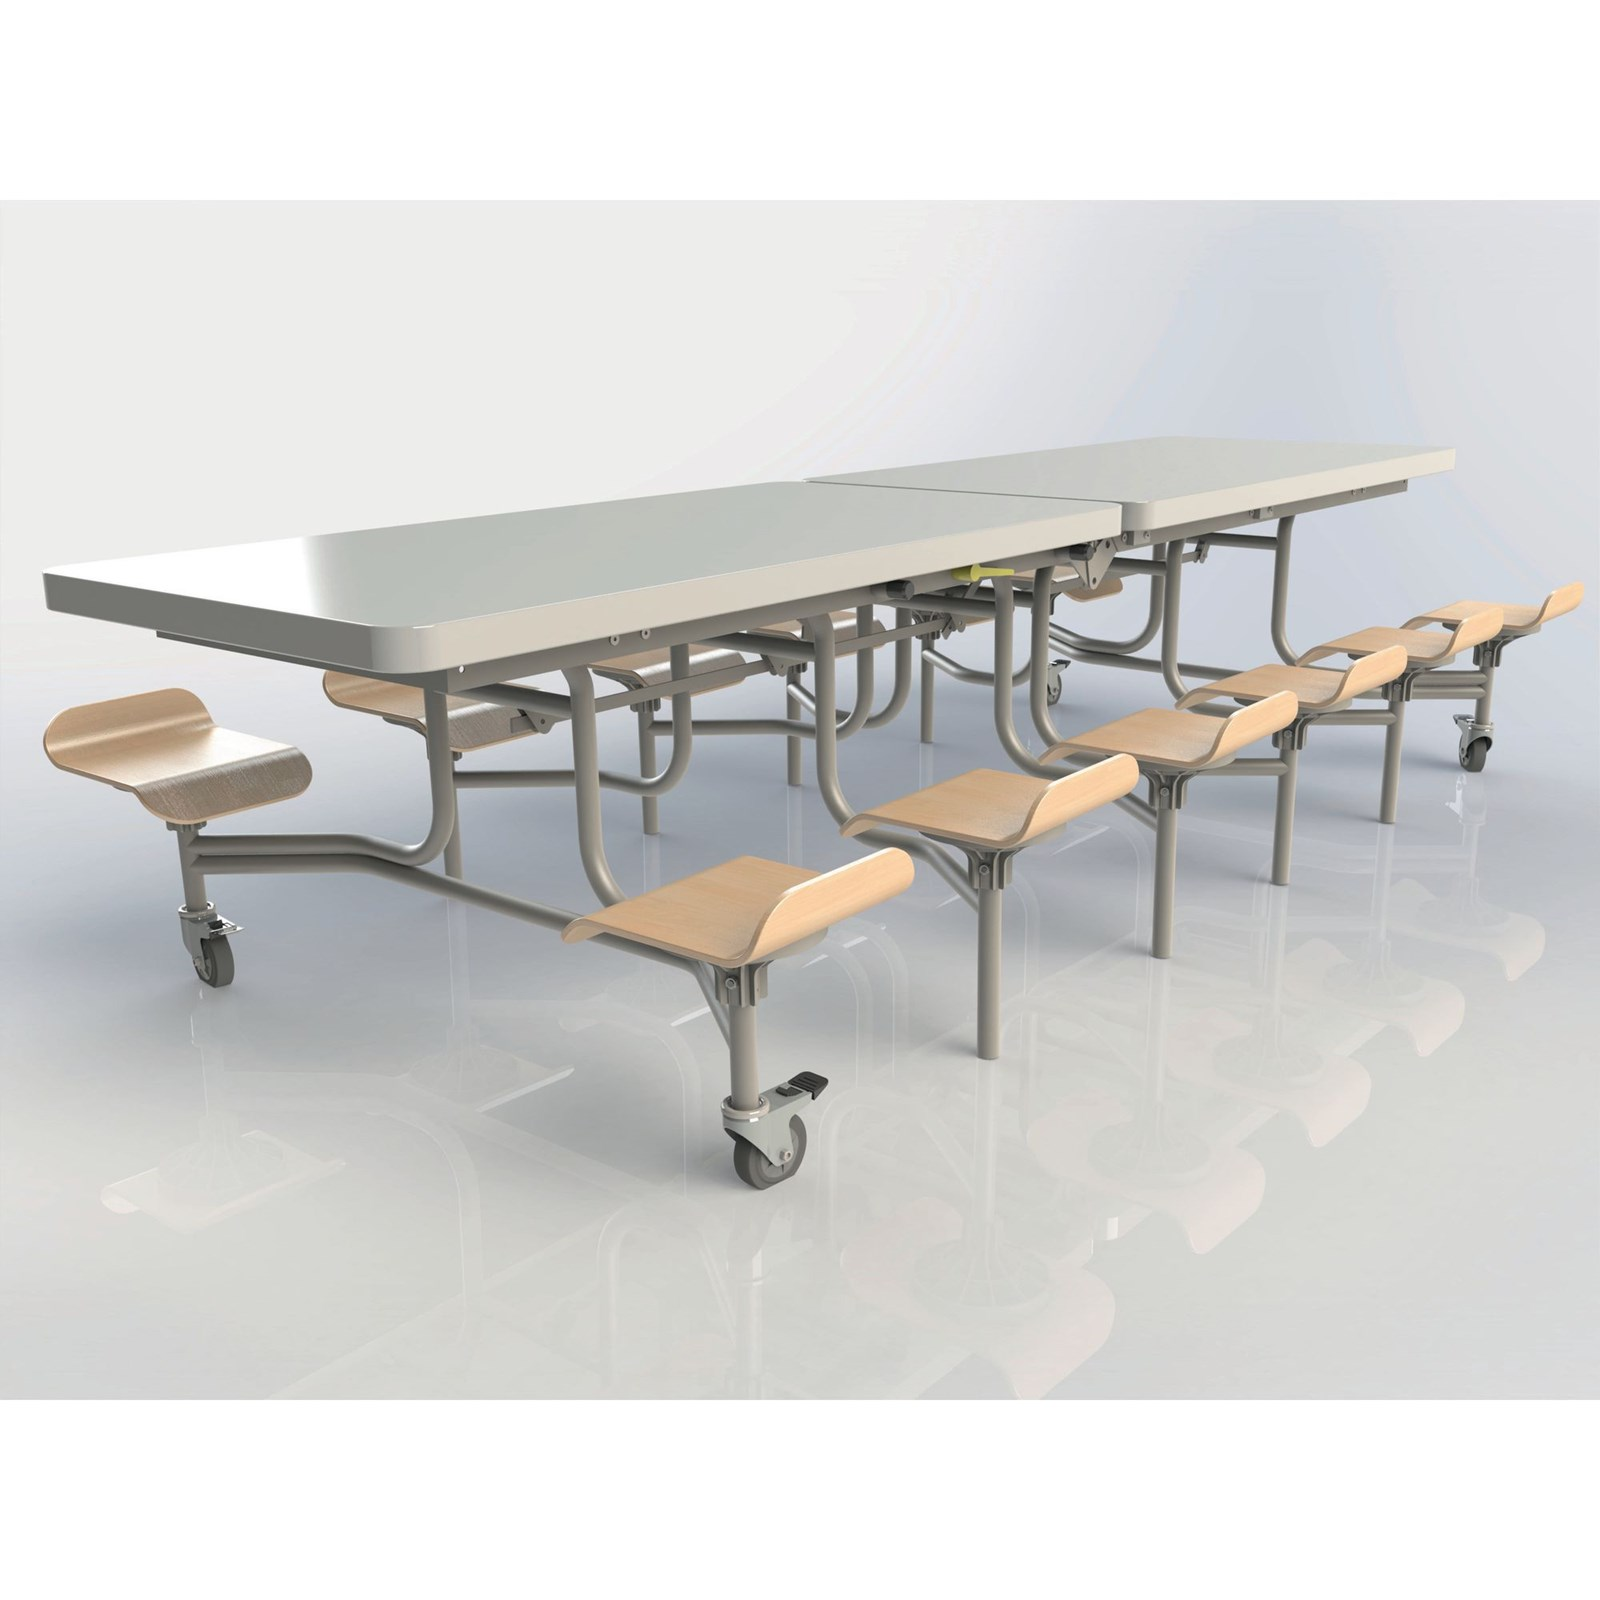 12 seat rect table h767mm seats white gls educational for 12 seat table